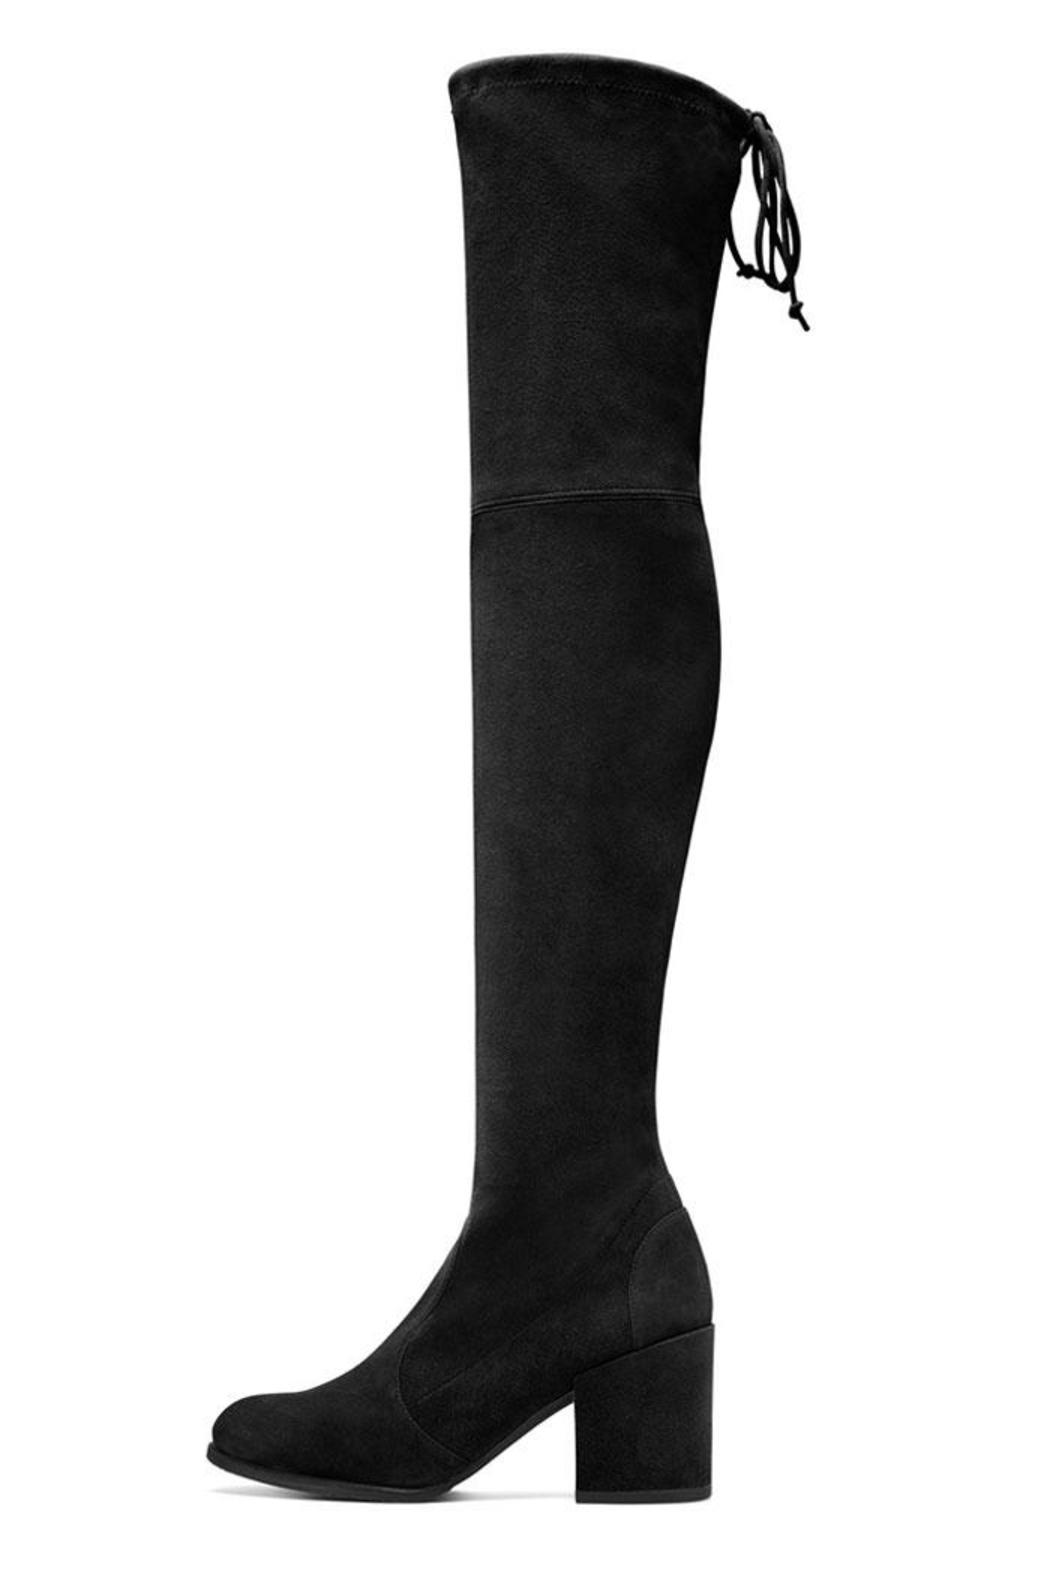 Stuart Weitzman Tieland Tall Boot From North Shore By Sole